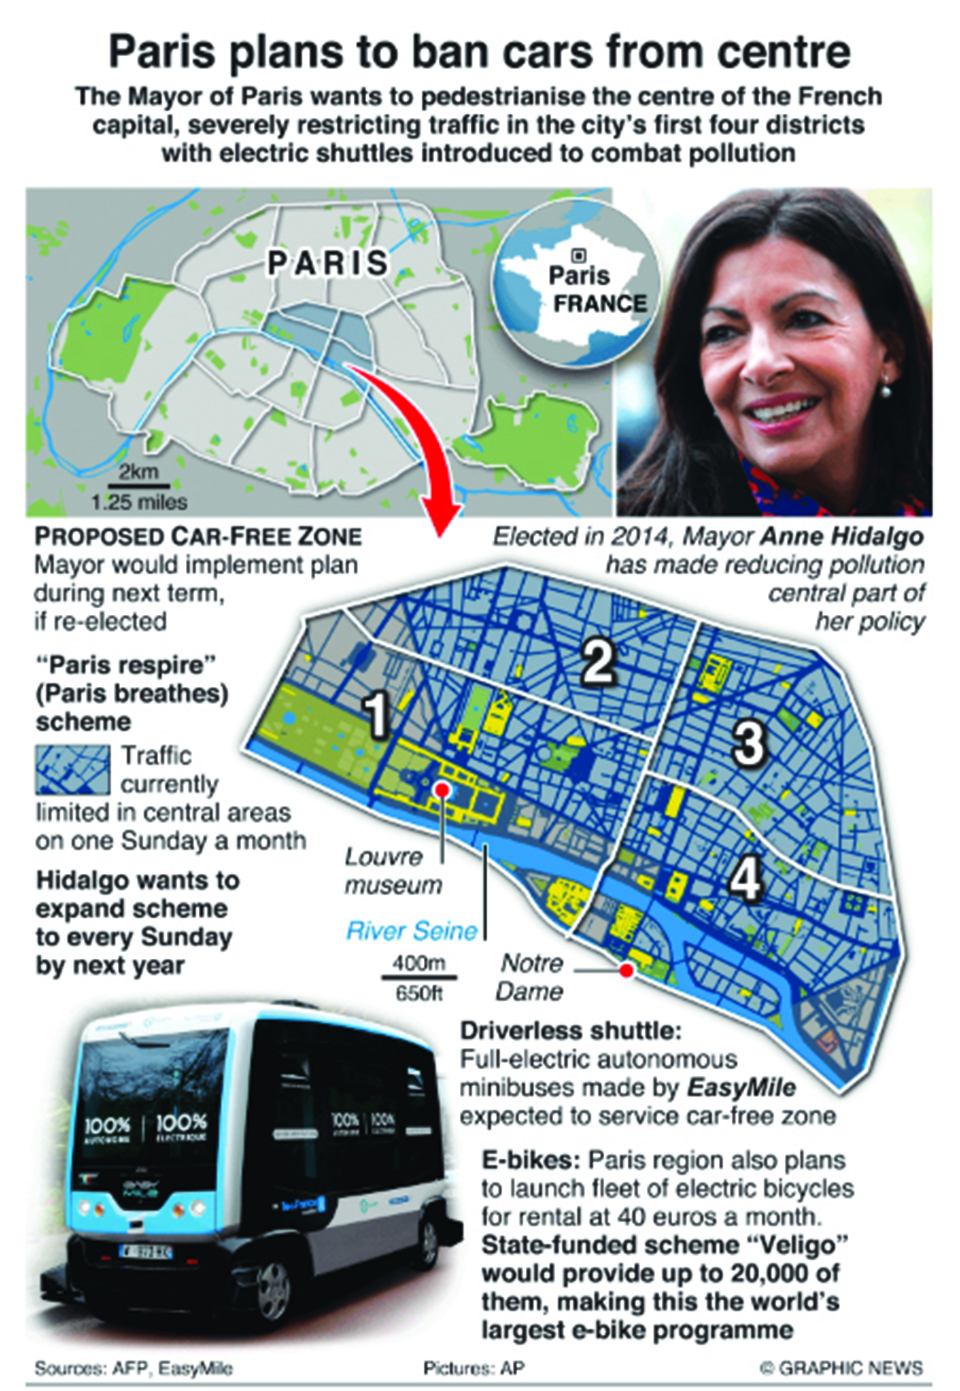 Infographics: Paris mayor plans to pedestrianize city centre